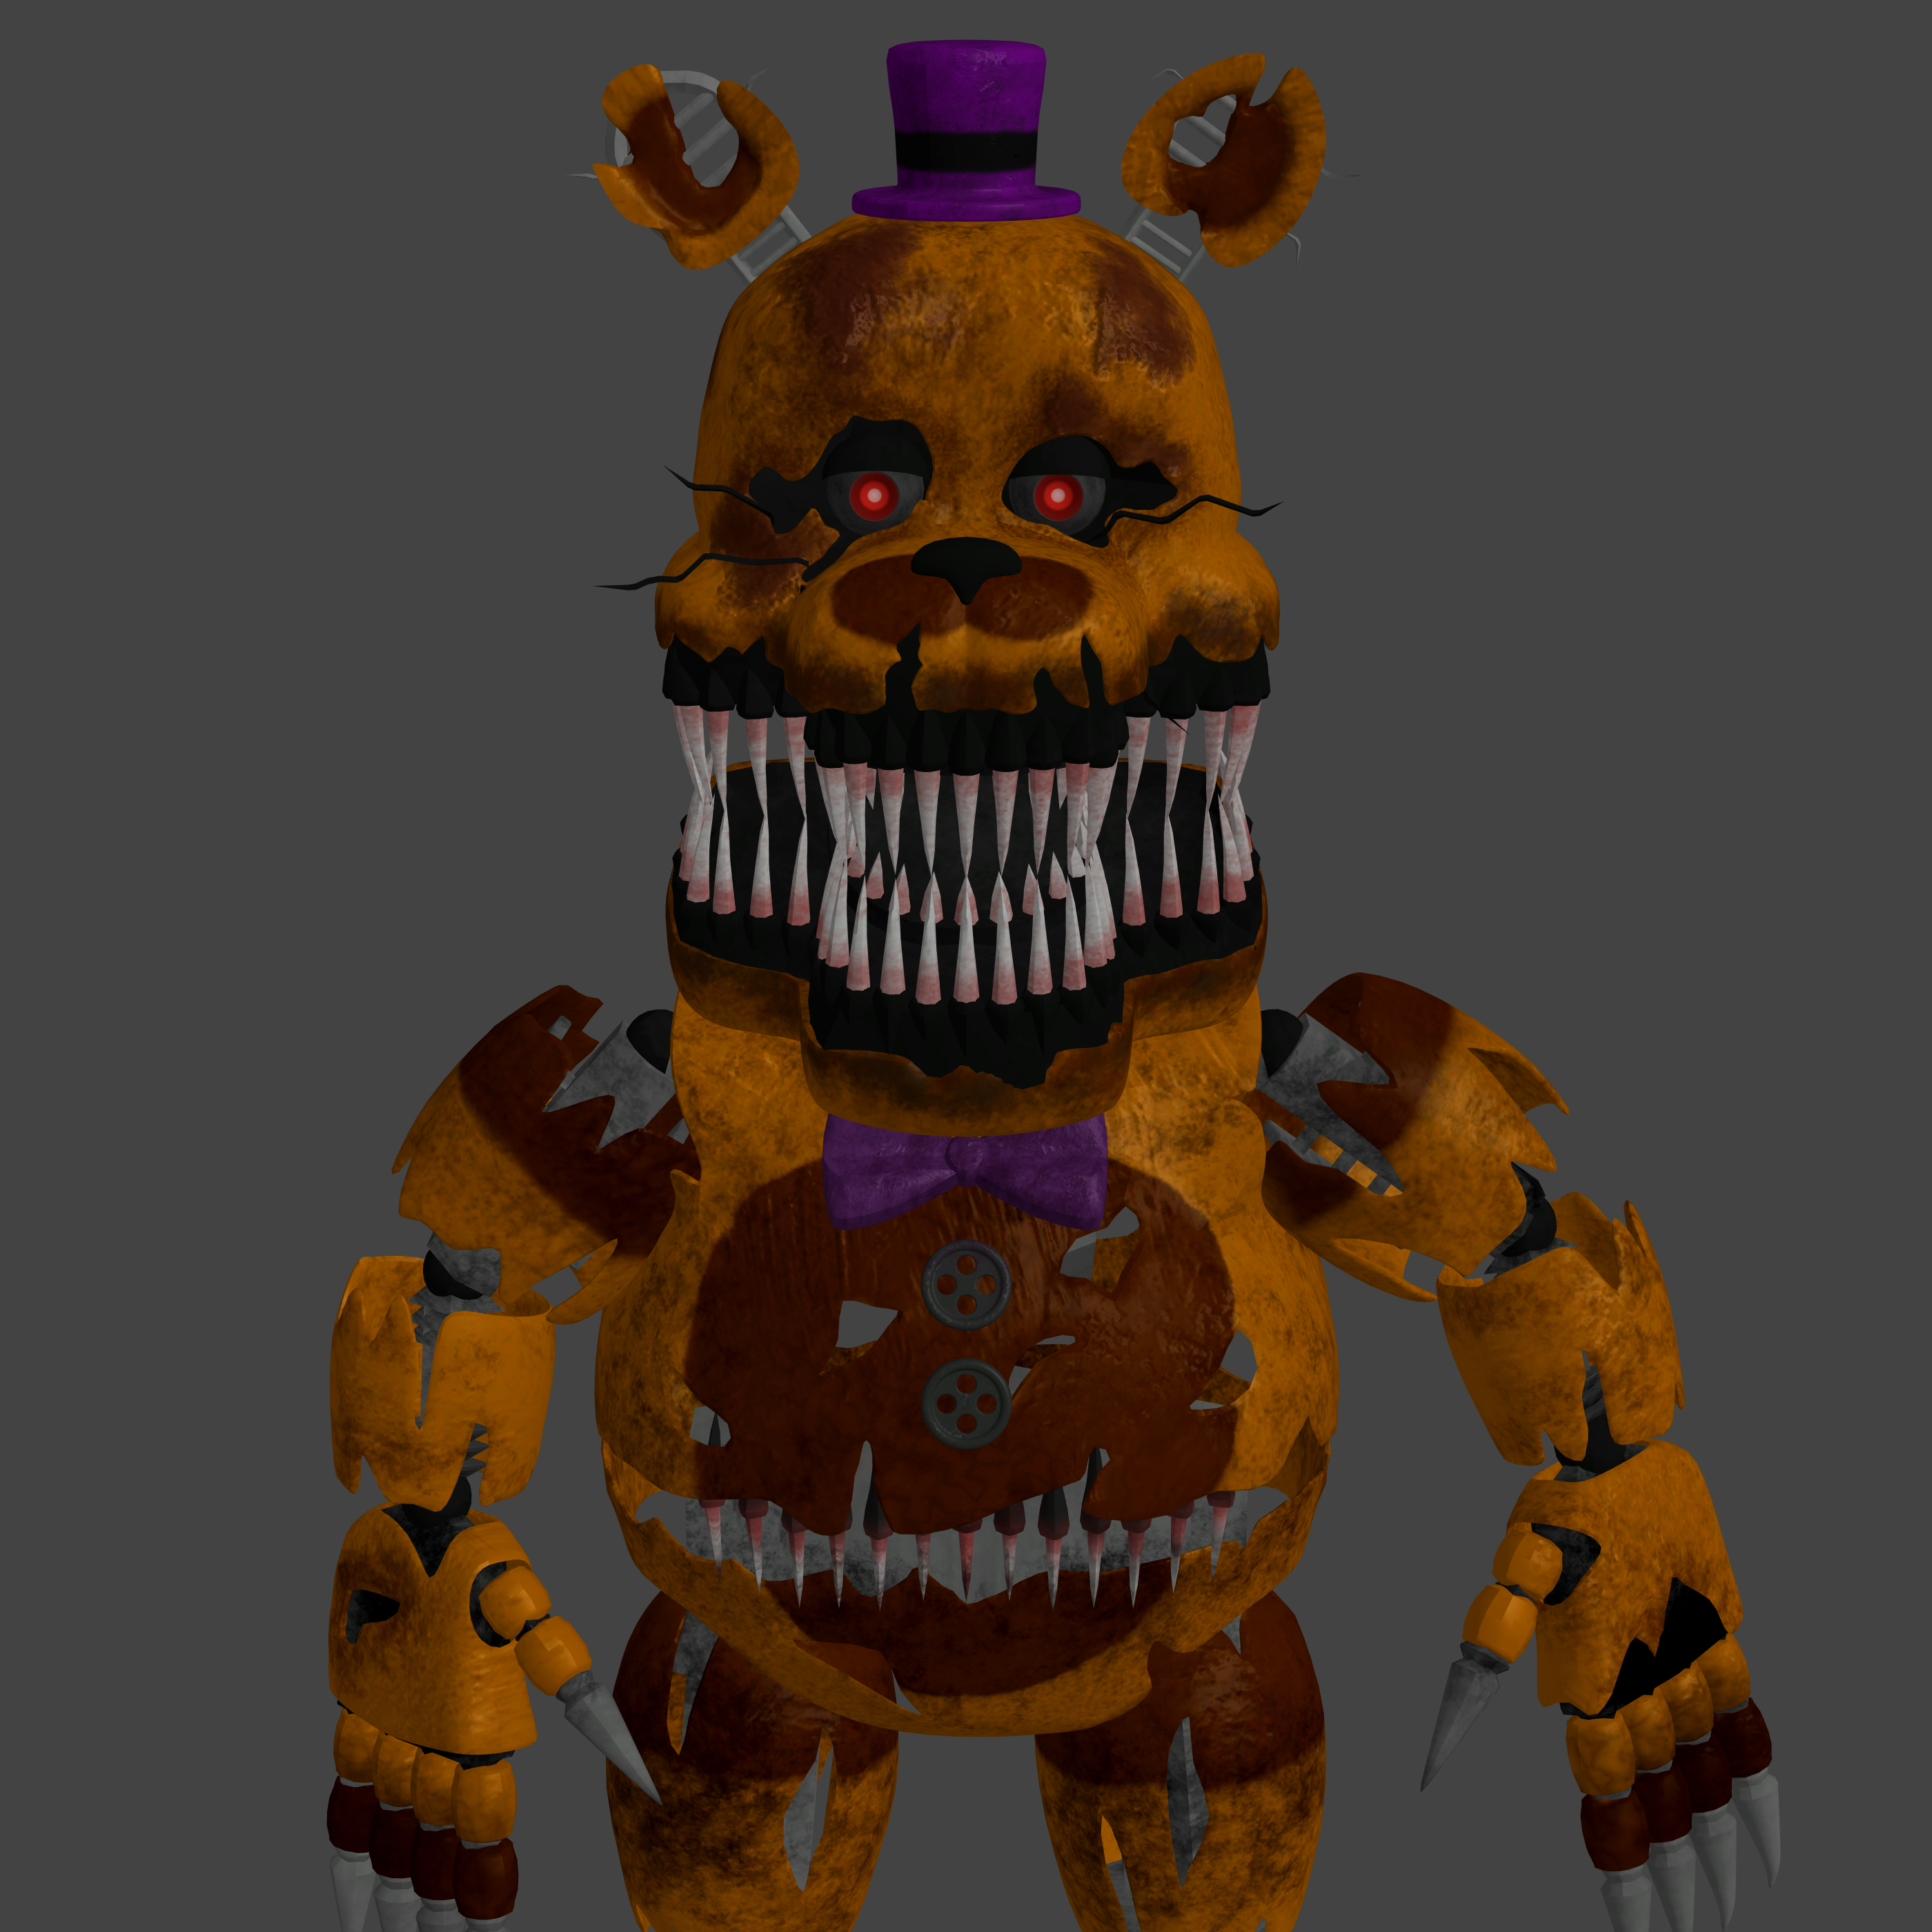 Nightmare Fredbear FNAF4 By RealMoonlight On DeviantArt